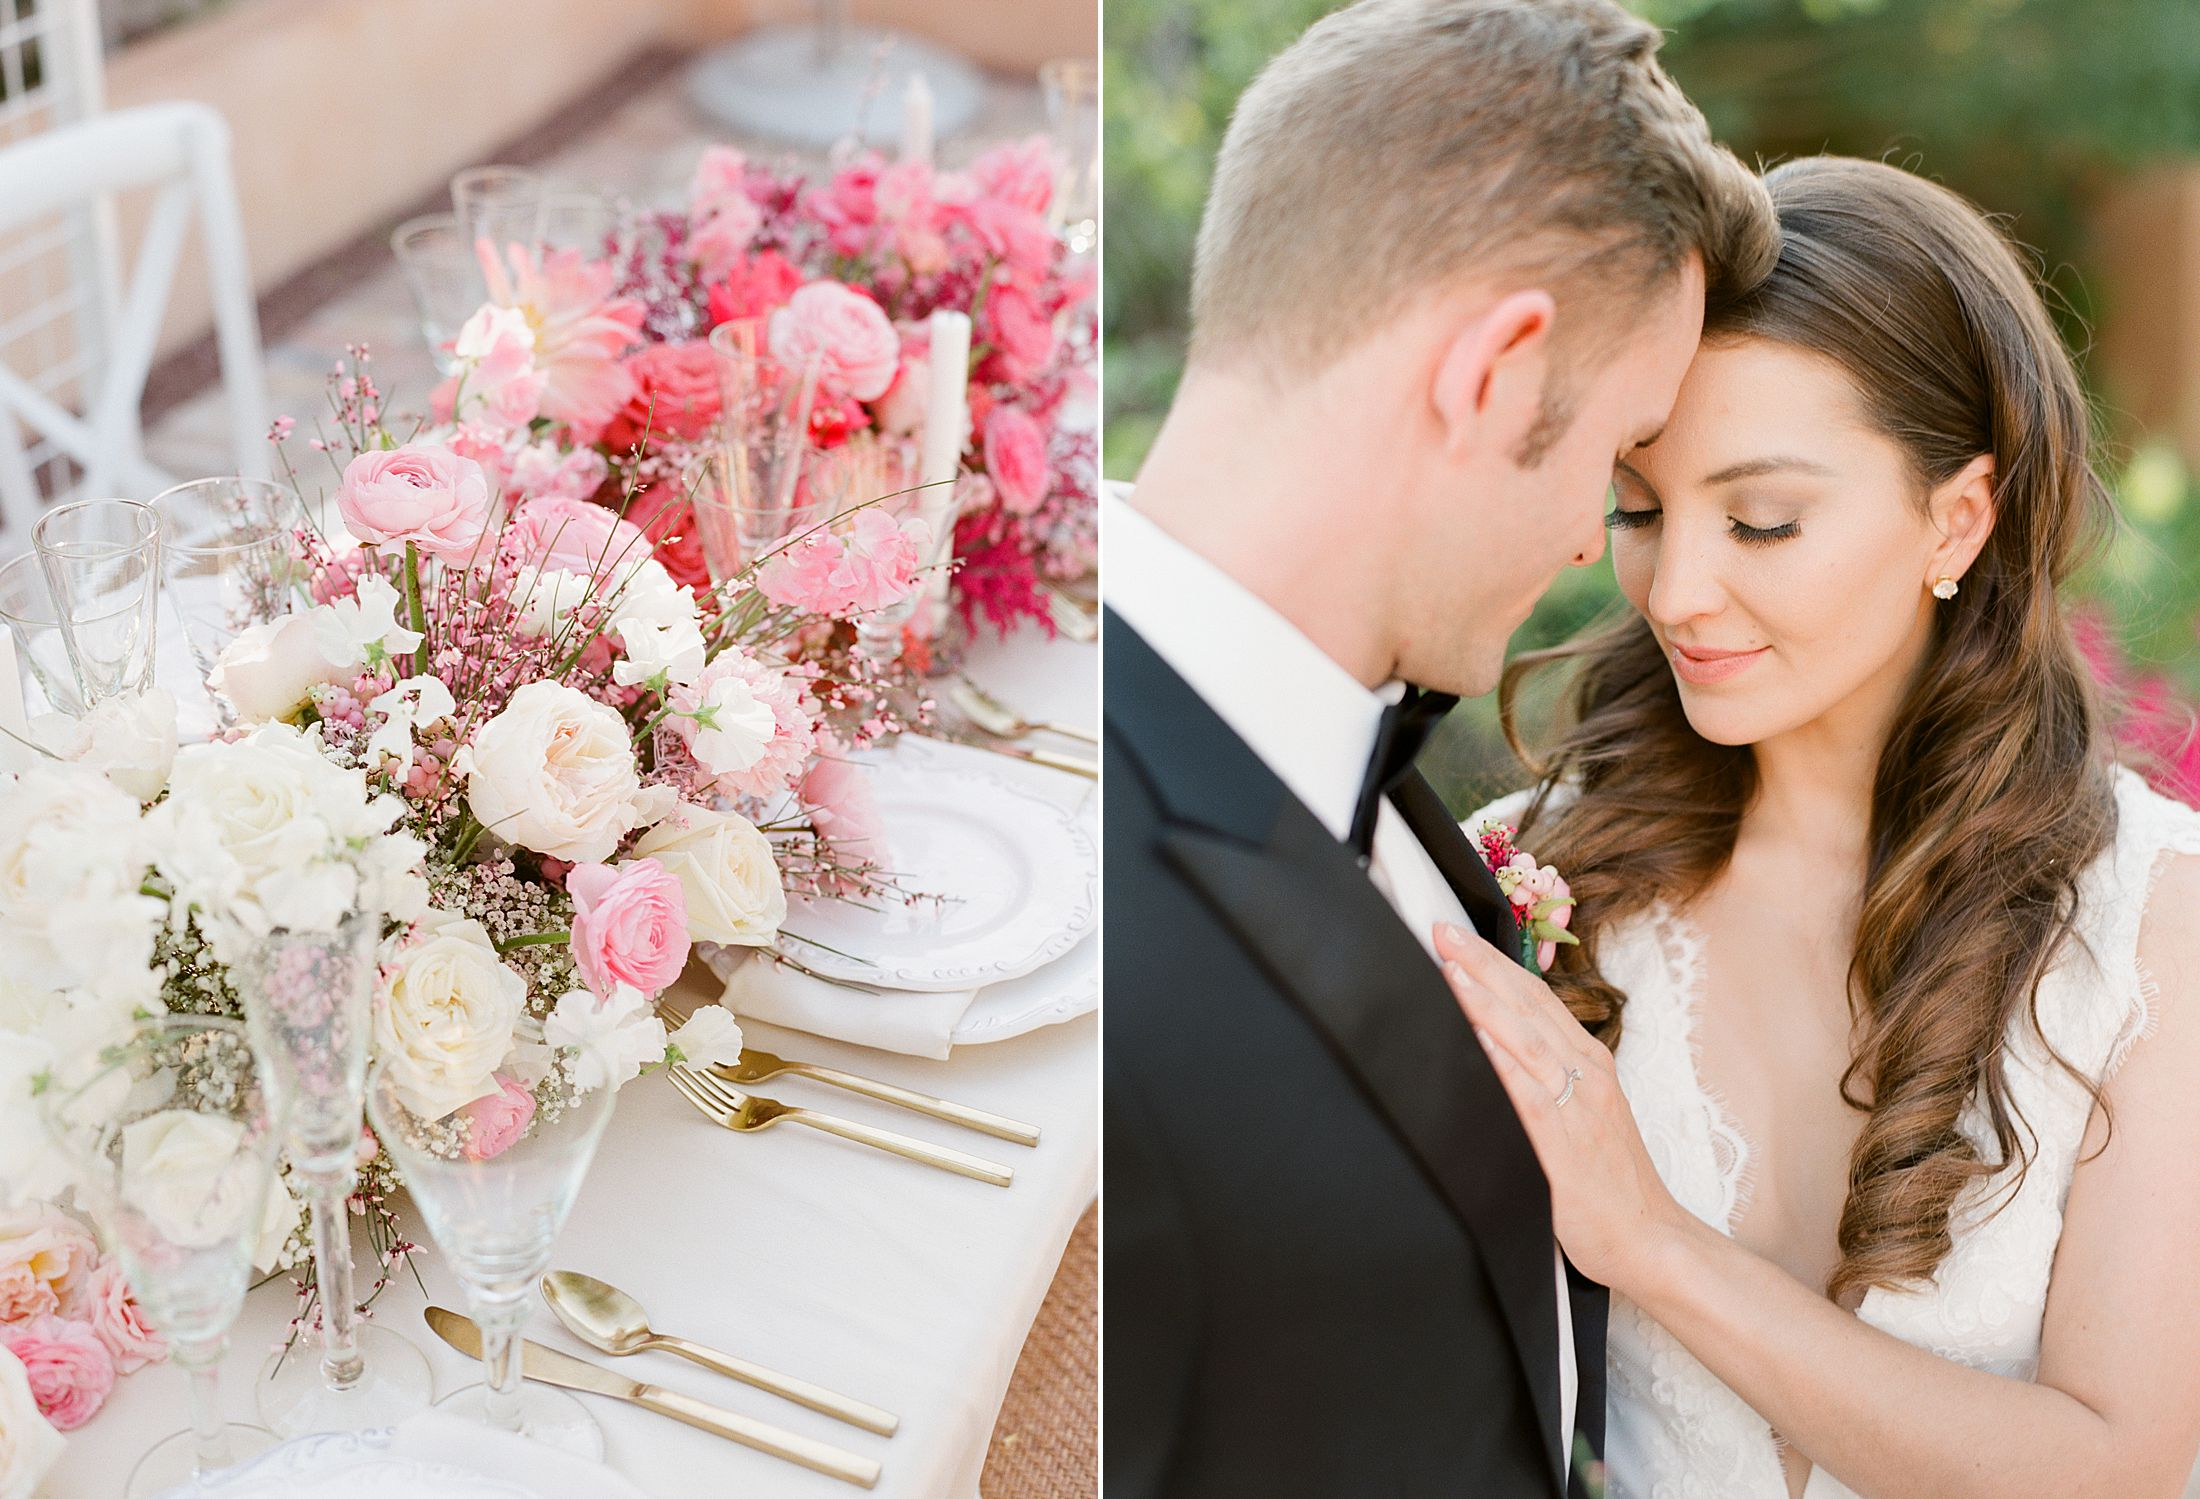 Pink Ombre Wedding Inspiration on Style Me Pretty - Royal Palms Wedding - Scottsdale Wedding - Ashley Baumgartner - Bloom and Blueprint - Wedding Puppies - Bulldog Puppies_0012.jpg